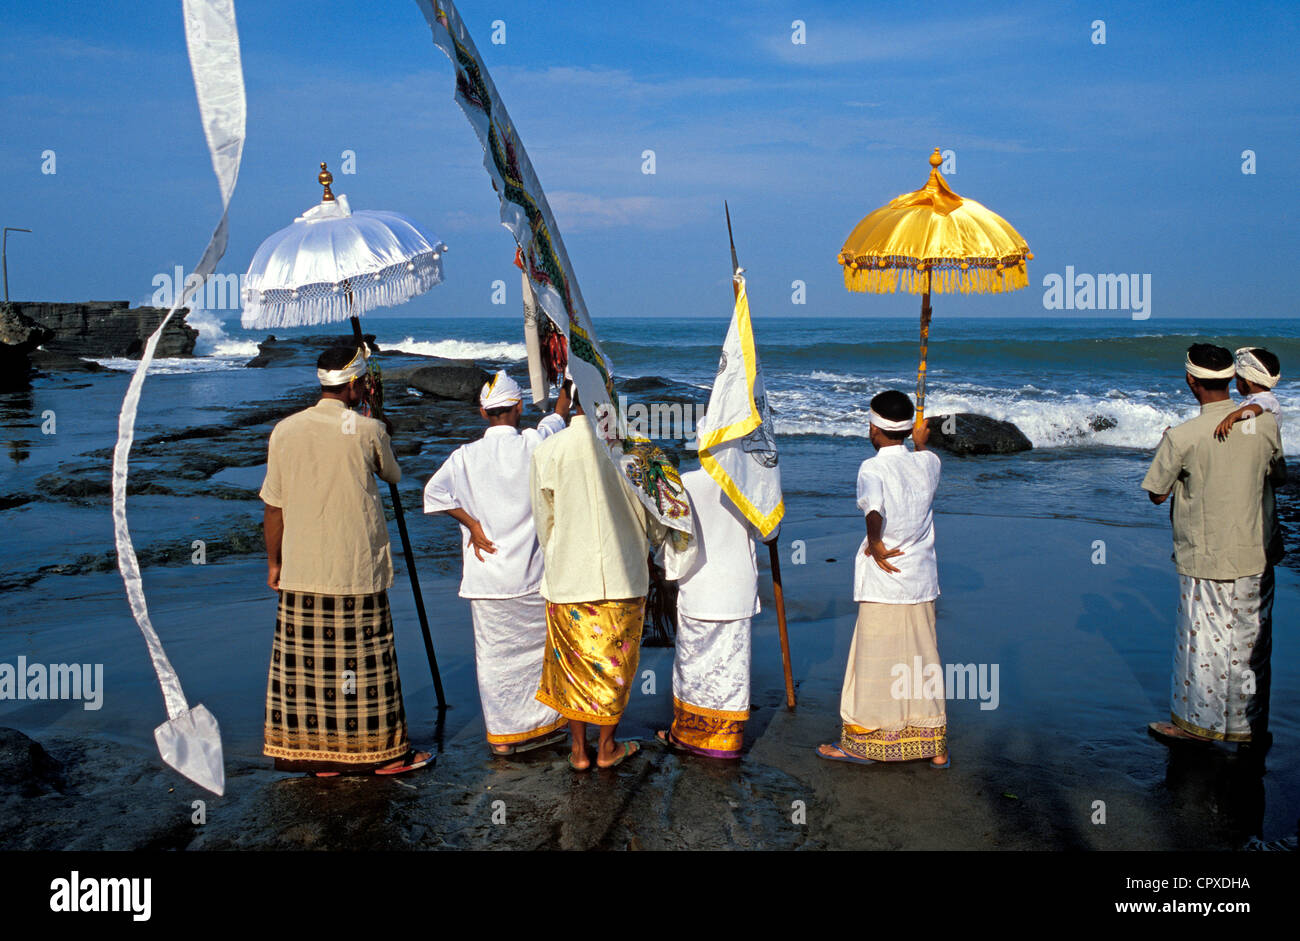 Indonesia, Bali, the Mekiyis purification ceremonies at the Pura Tanah Lot Temple, the Balinese New Year's celebration - Stock Image